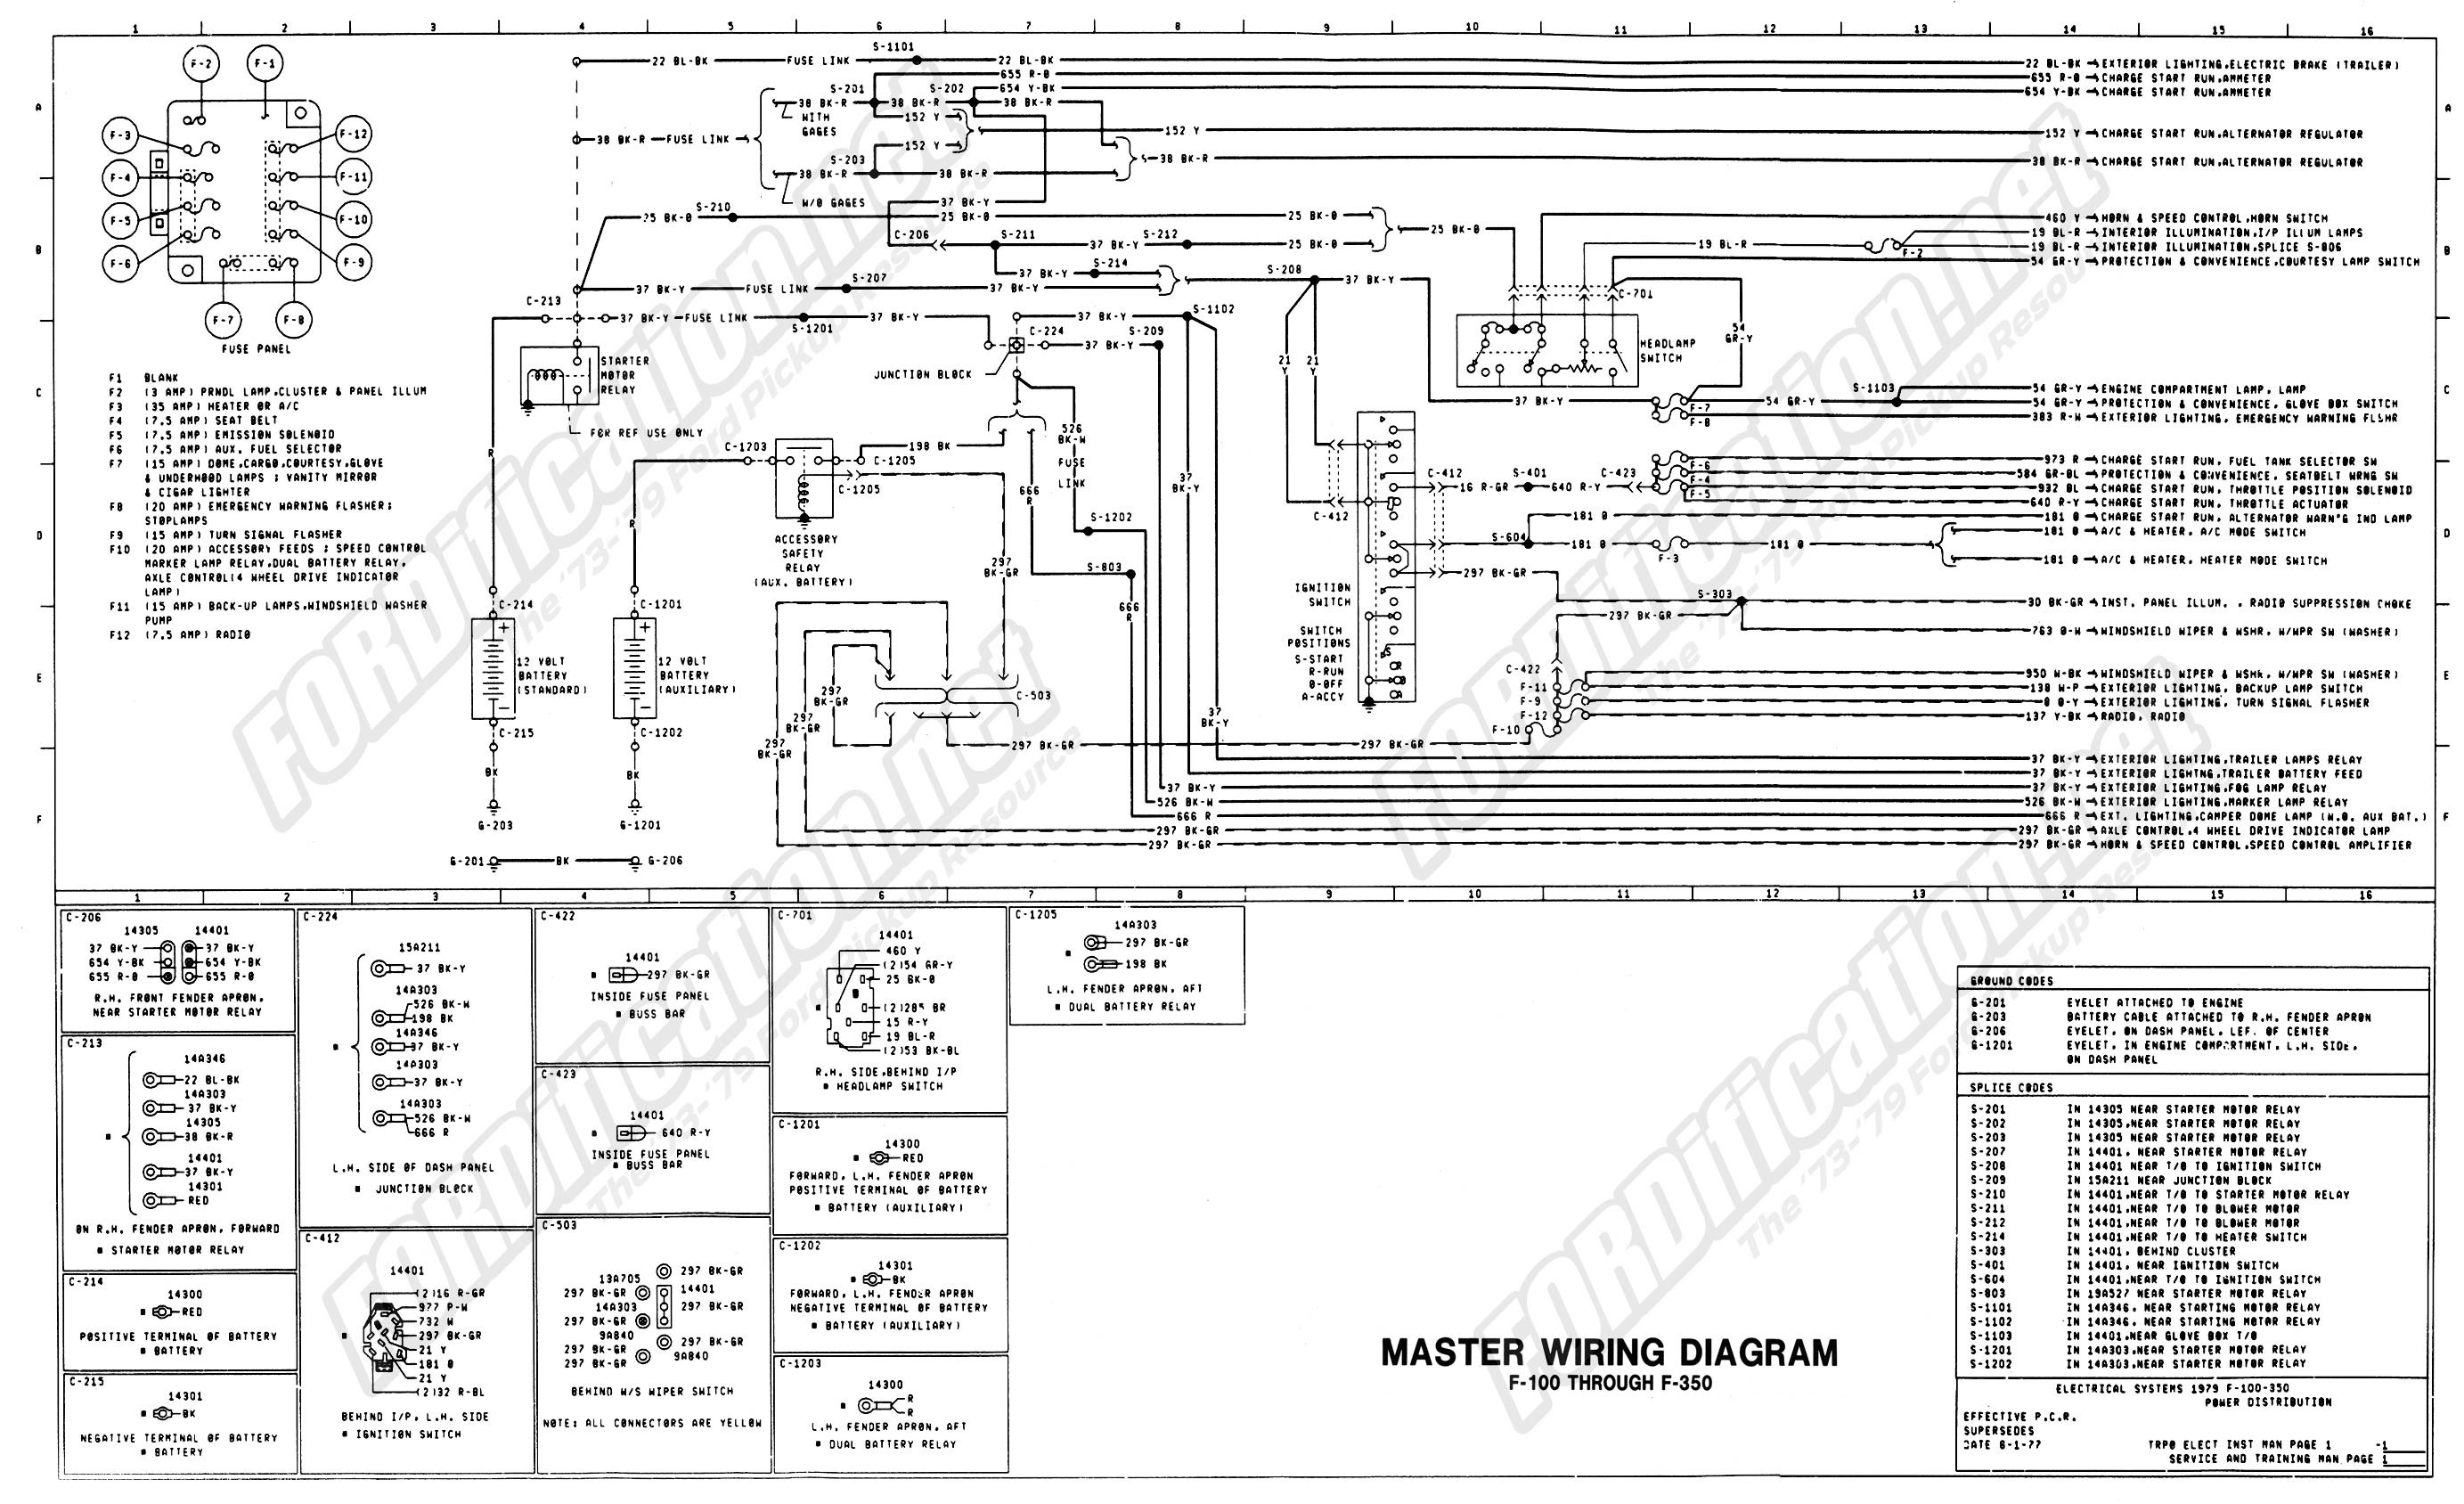 1999 ford f150 radio wiring diagram unique wiring diagram image rh mainetreasurechest com Ford Stereo Wiring Harness Diagram Automotive Wiring Harness